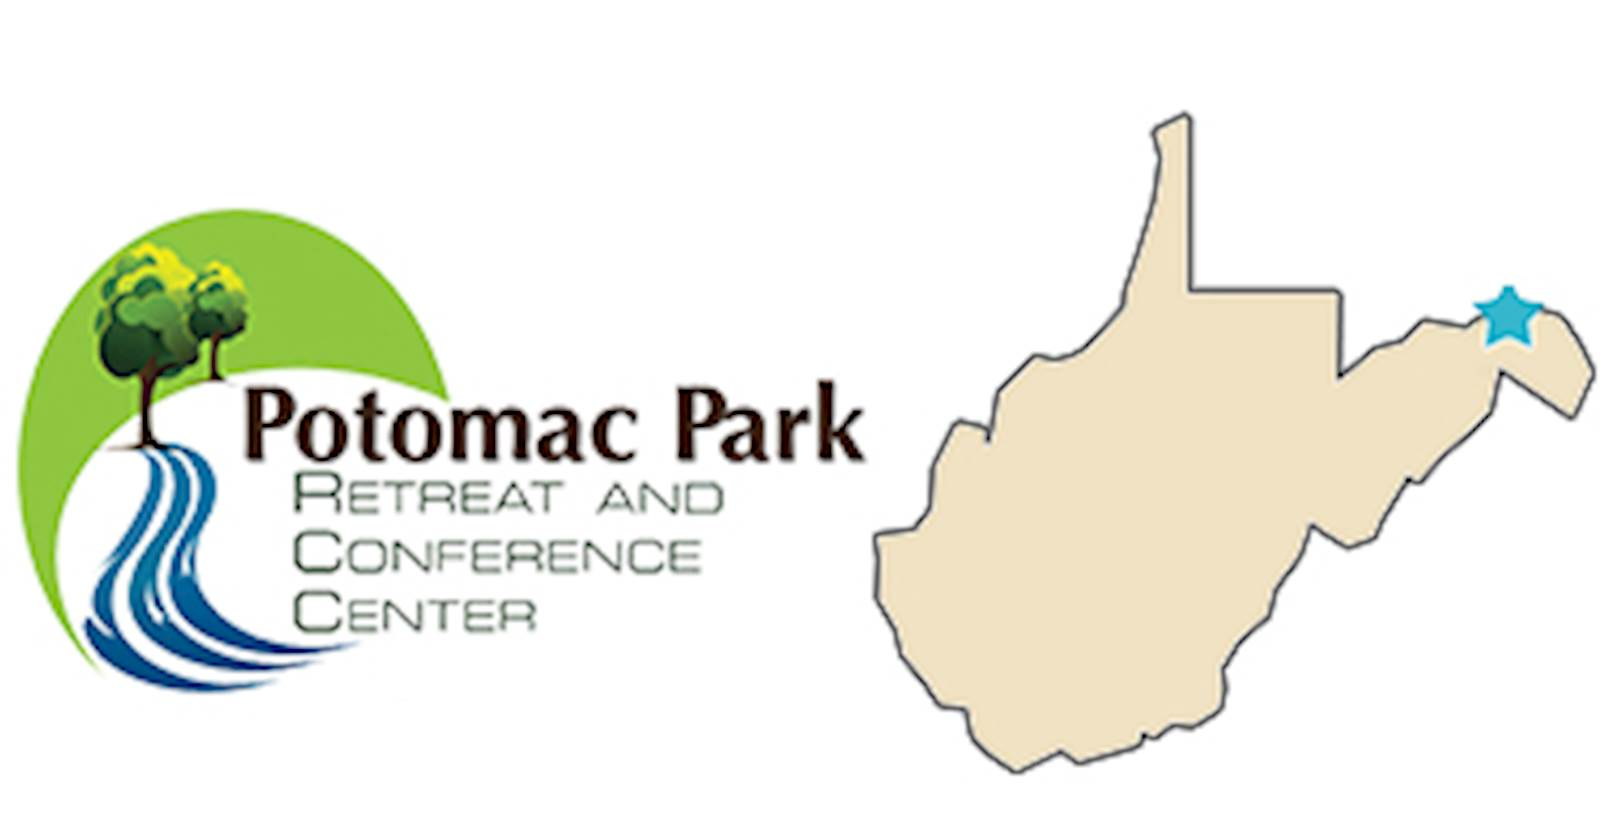 Potomac Park – Baltimore & DC Region Conference Center - logo and link